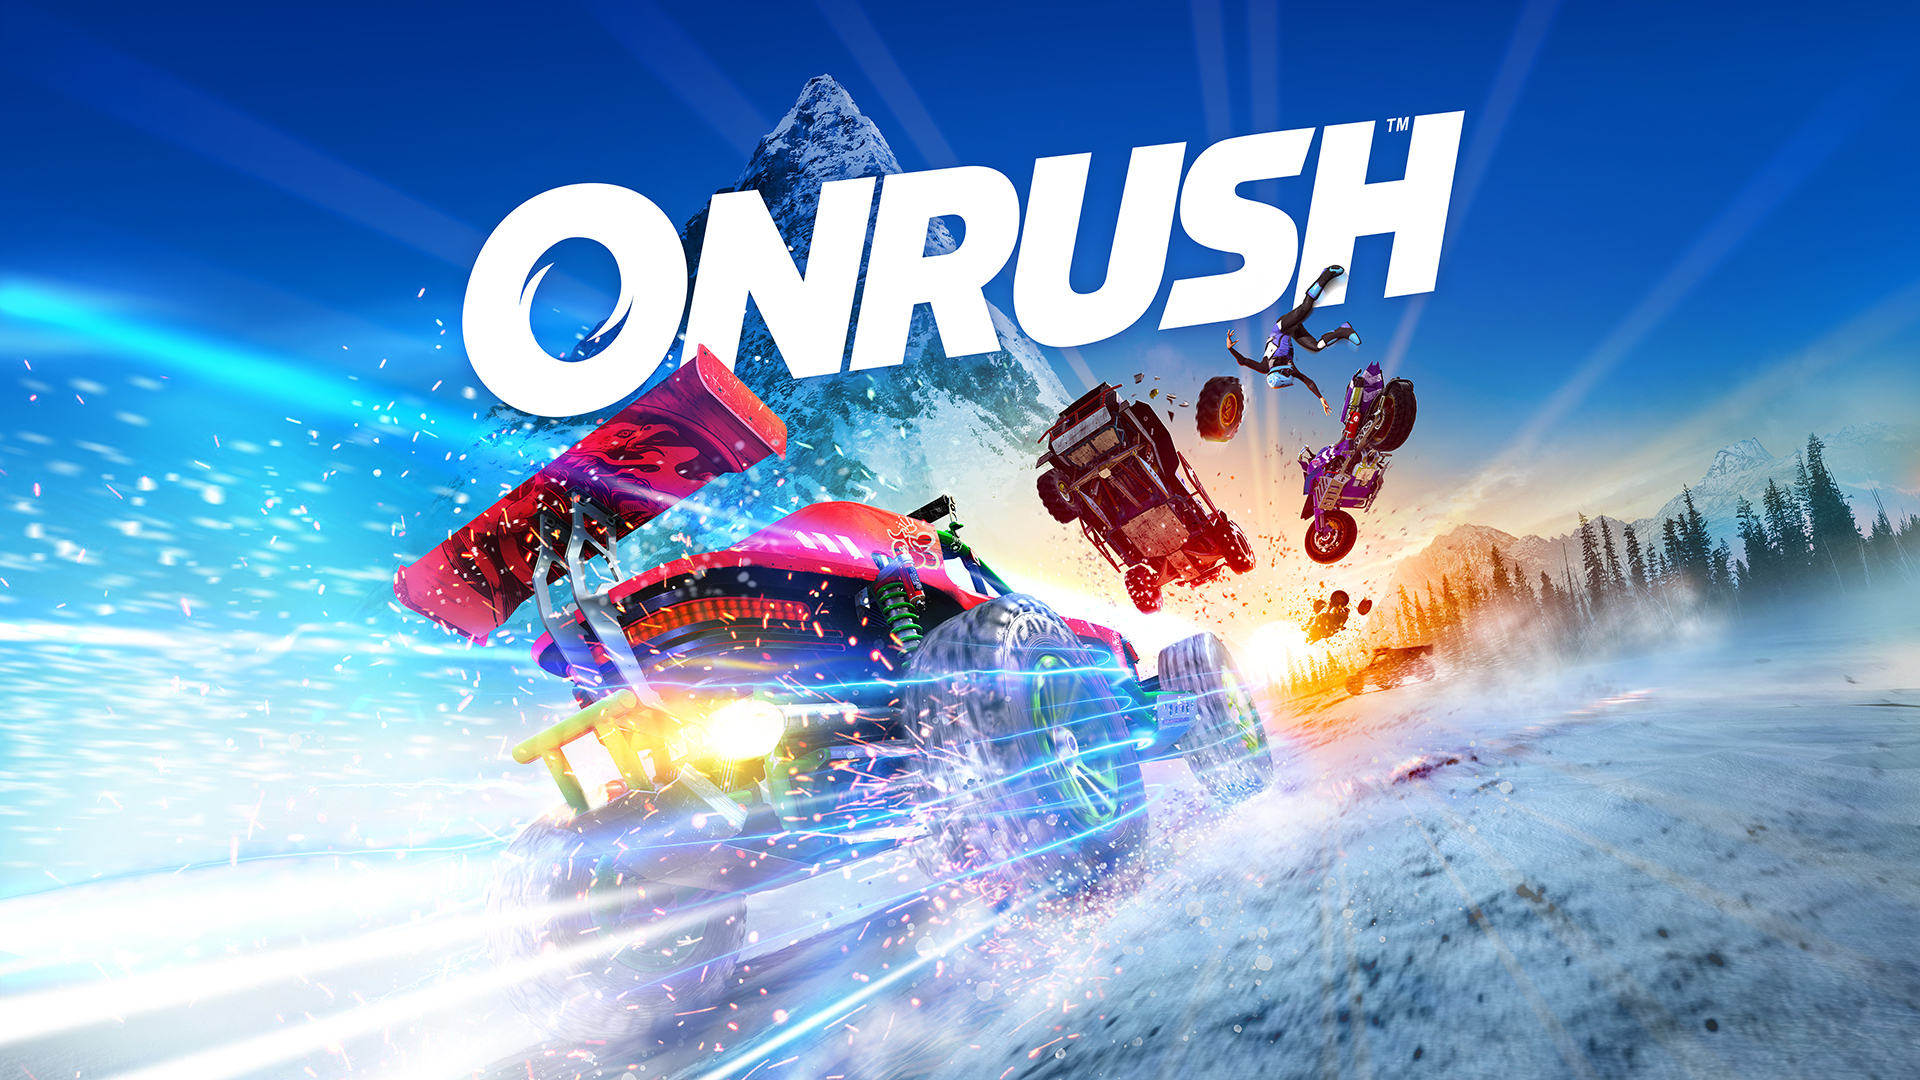 Arcade Racing Game ONRUSH Due On June 5th Pre Order